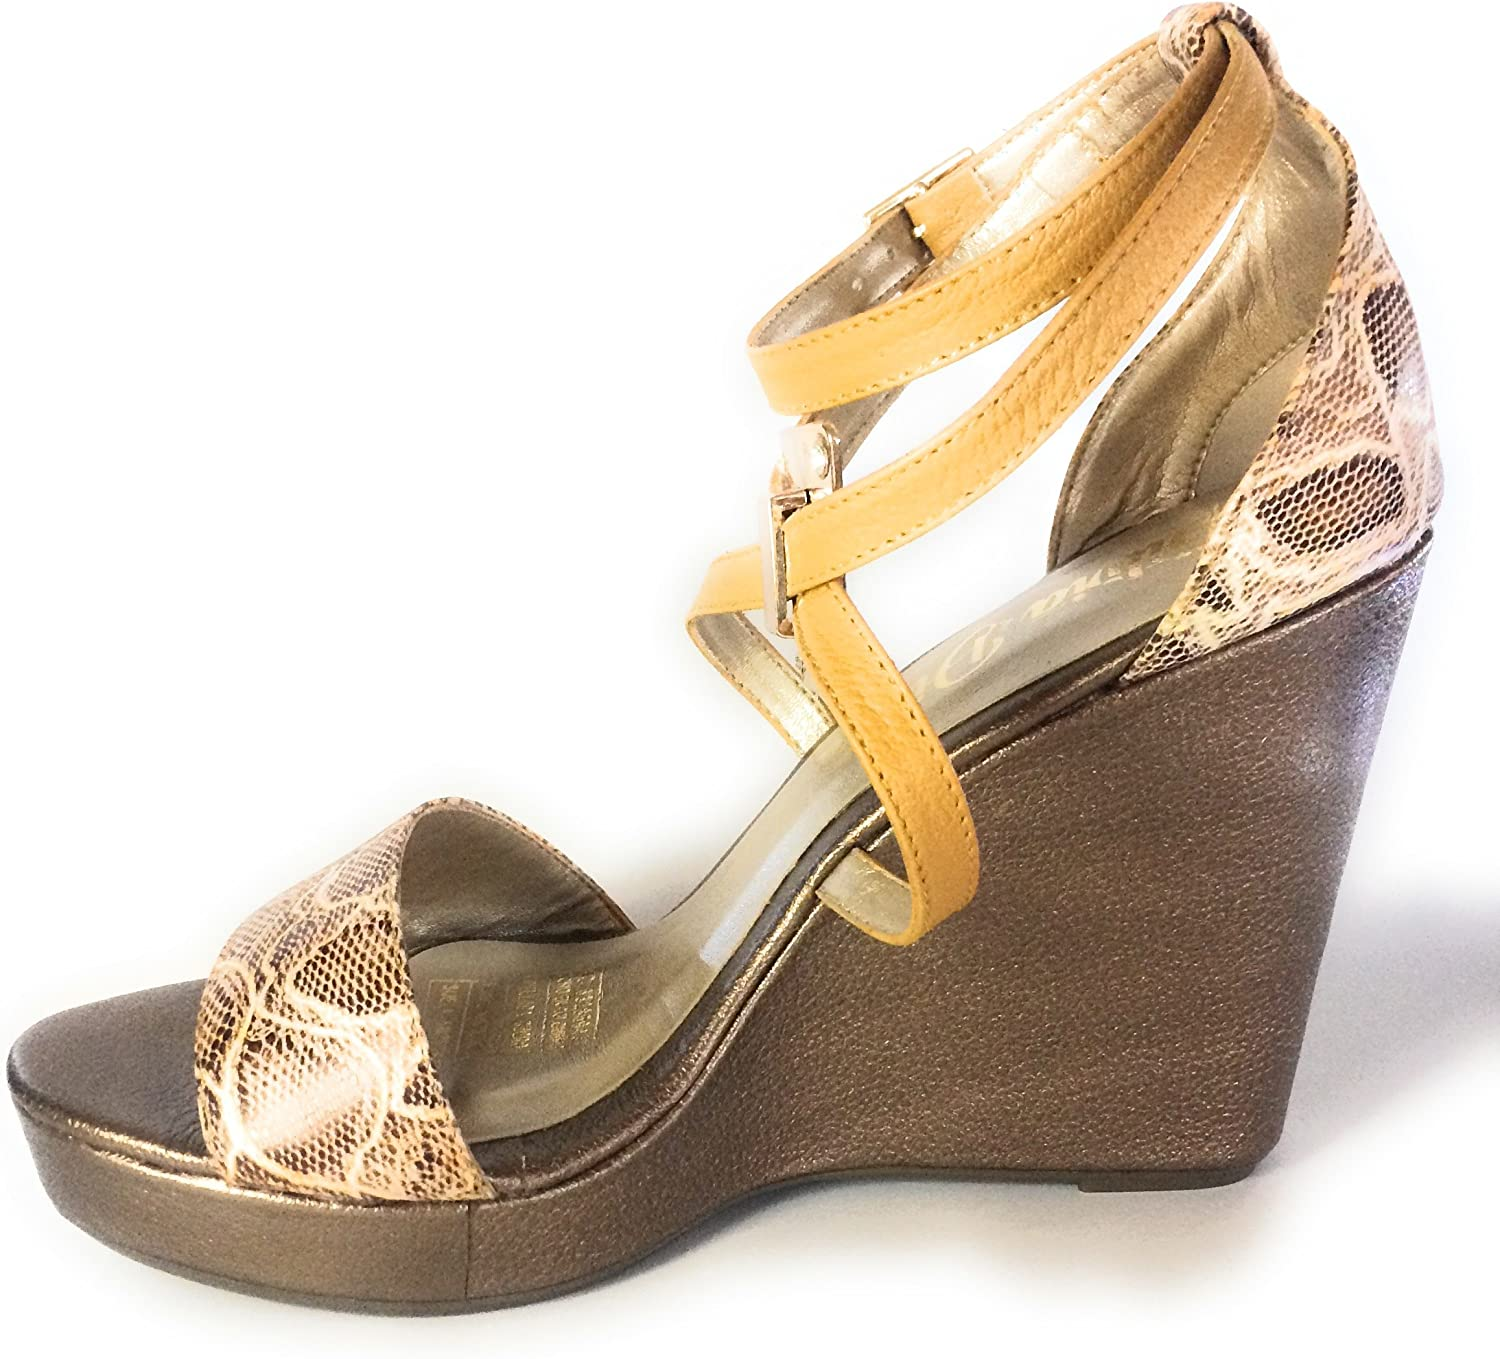 Silvia Diaz Fashion shoes Ankle Strap Wedges Bronze and Mustard